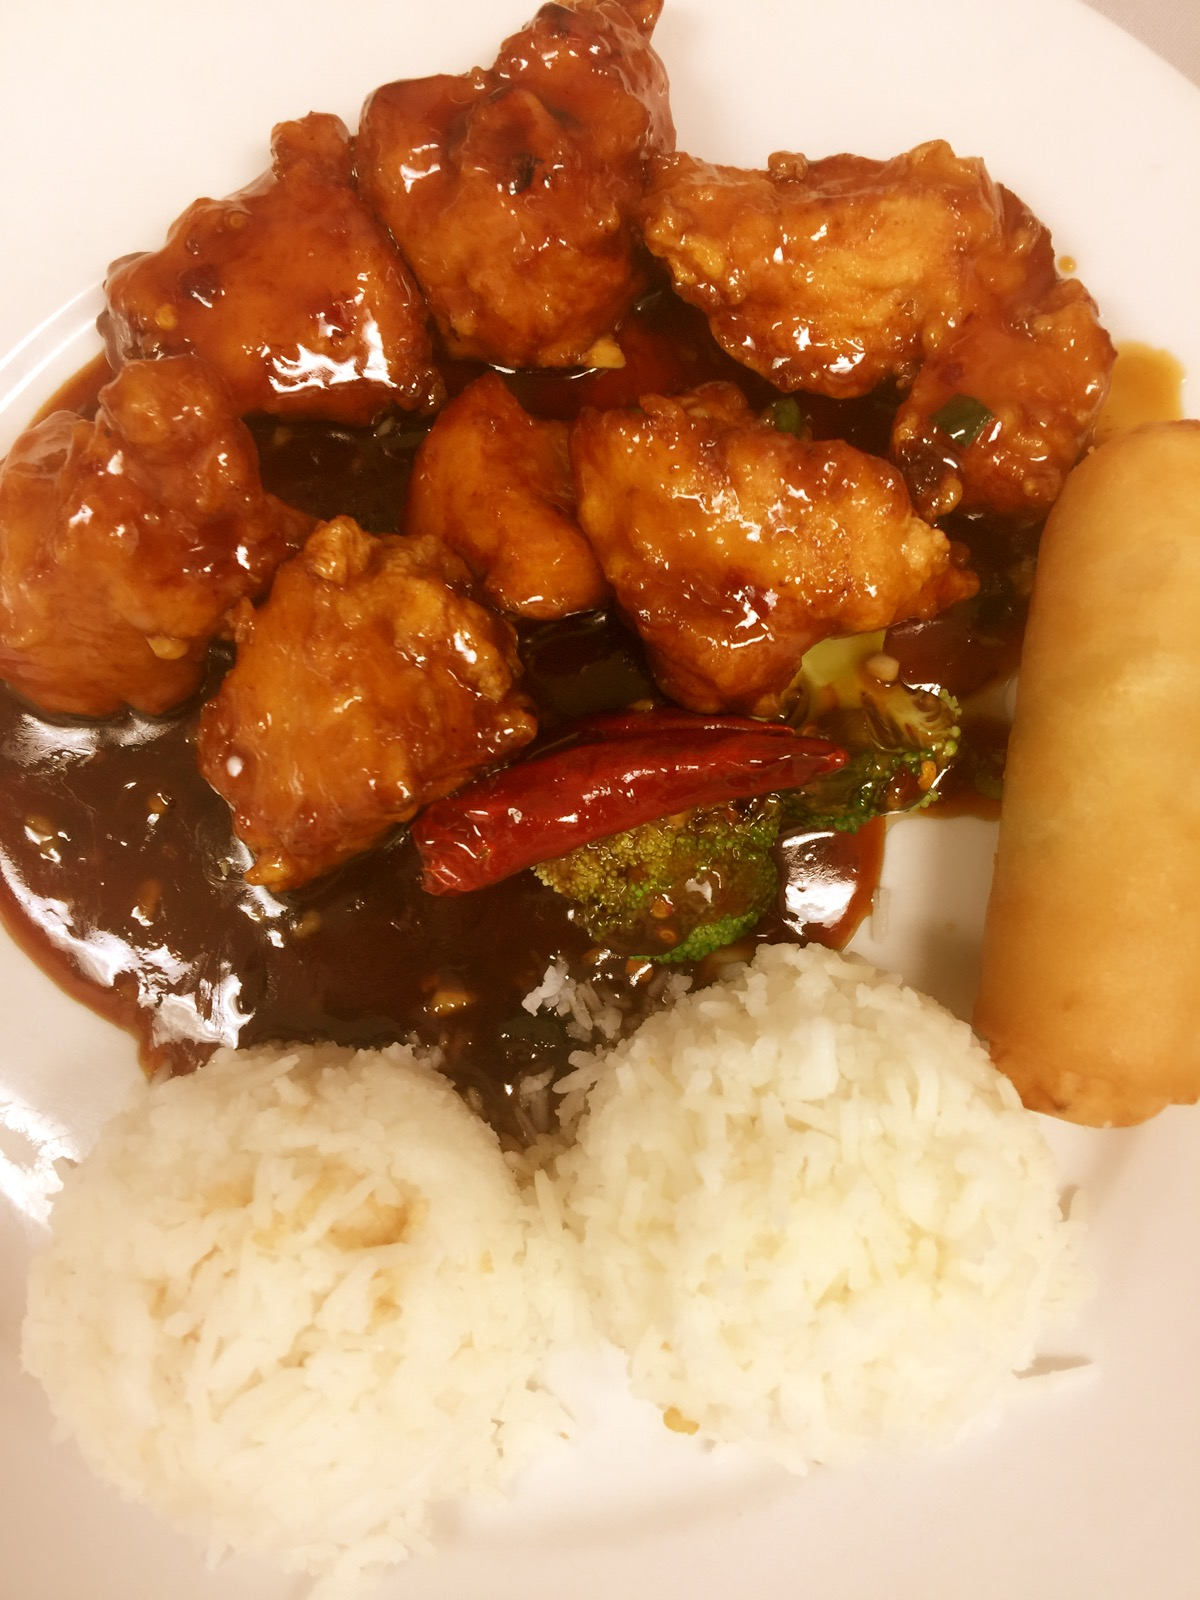 L26. General Tso's Chicken Image